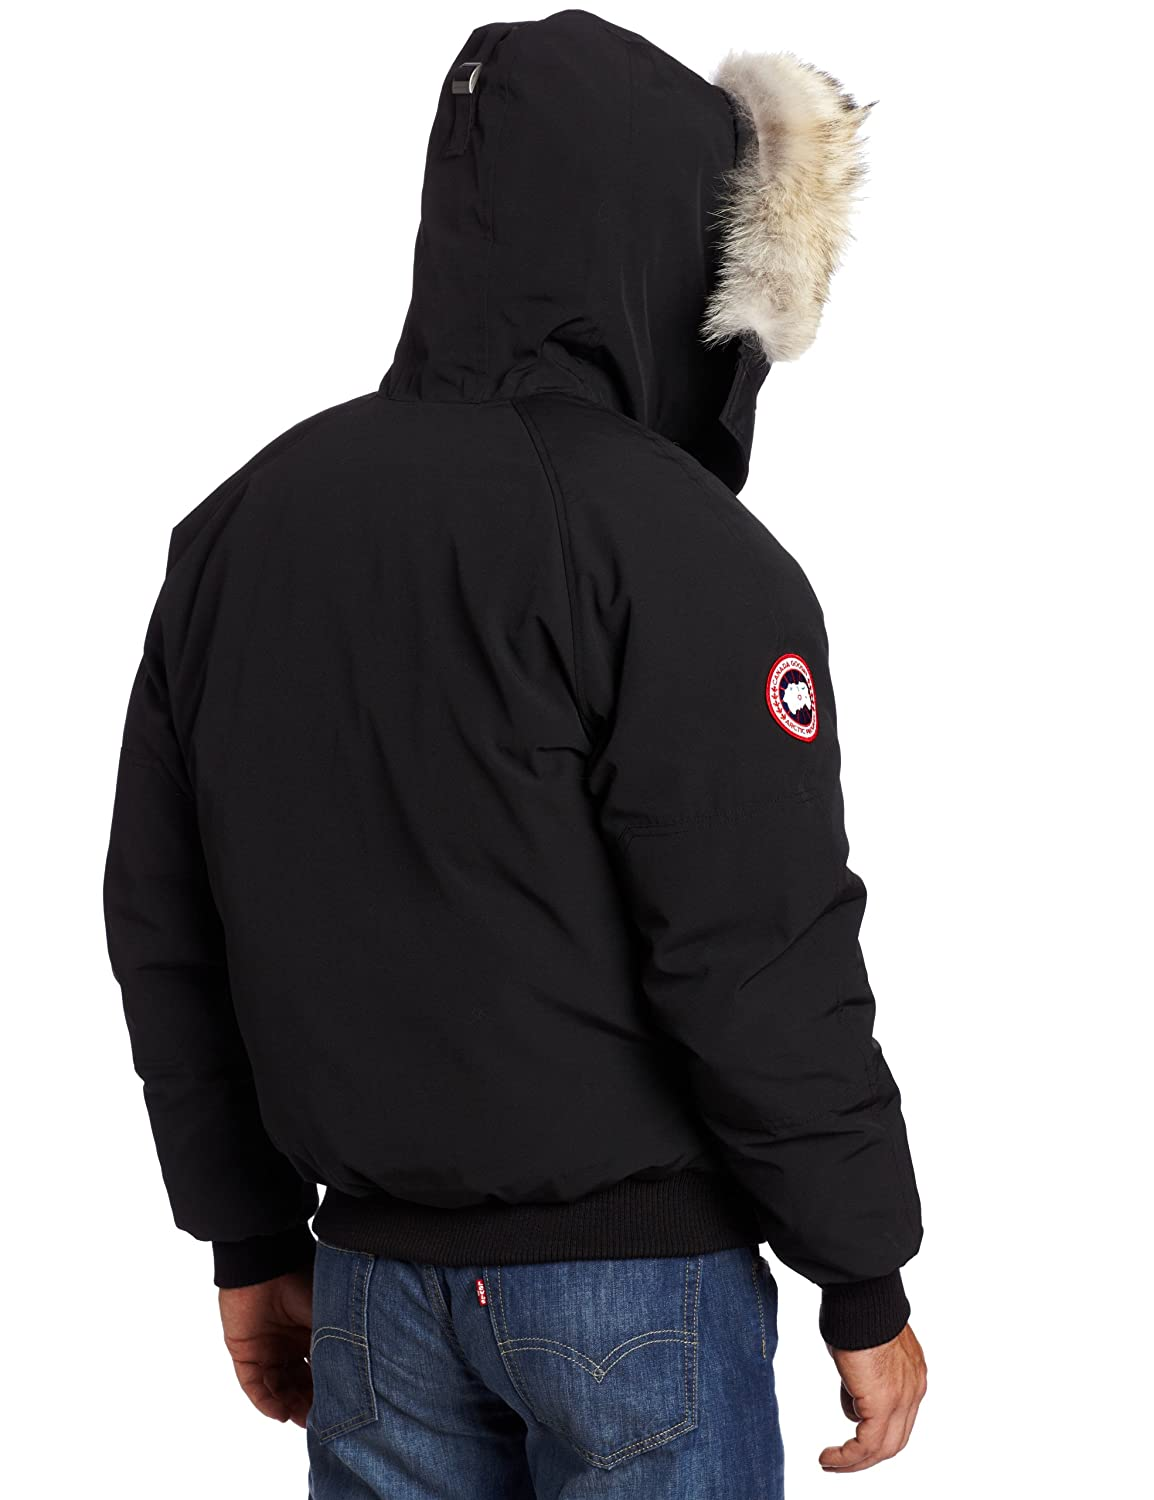 Canada Goose' Chilliwack Bomber Jacket Men's, Black, L